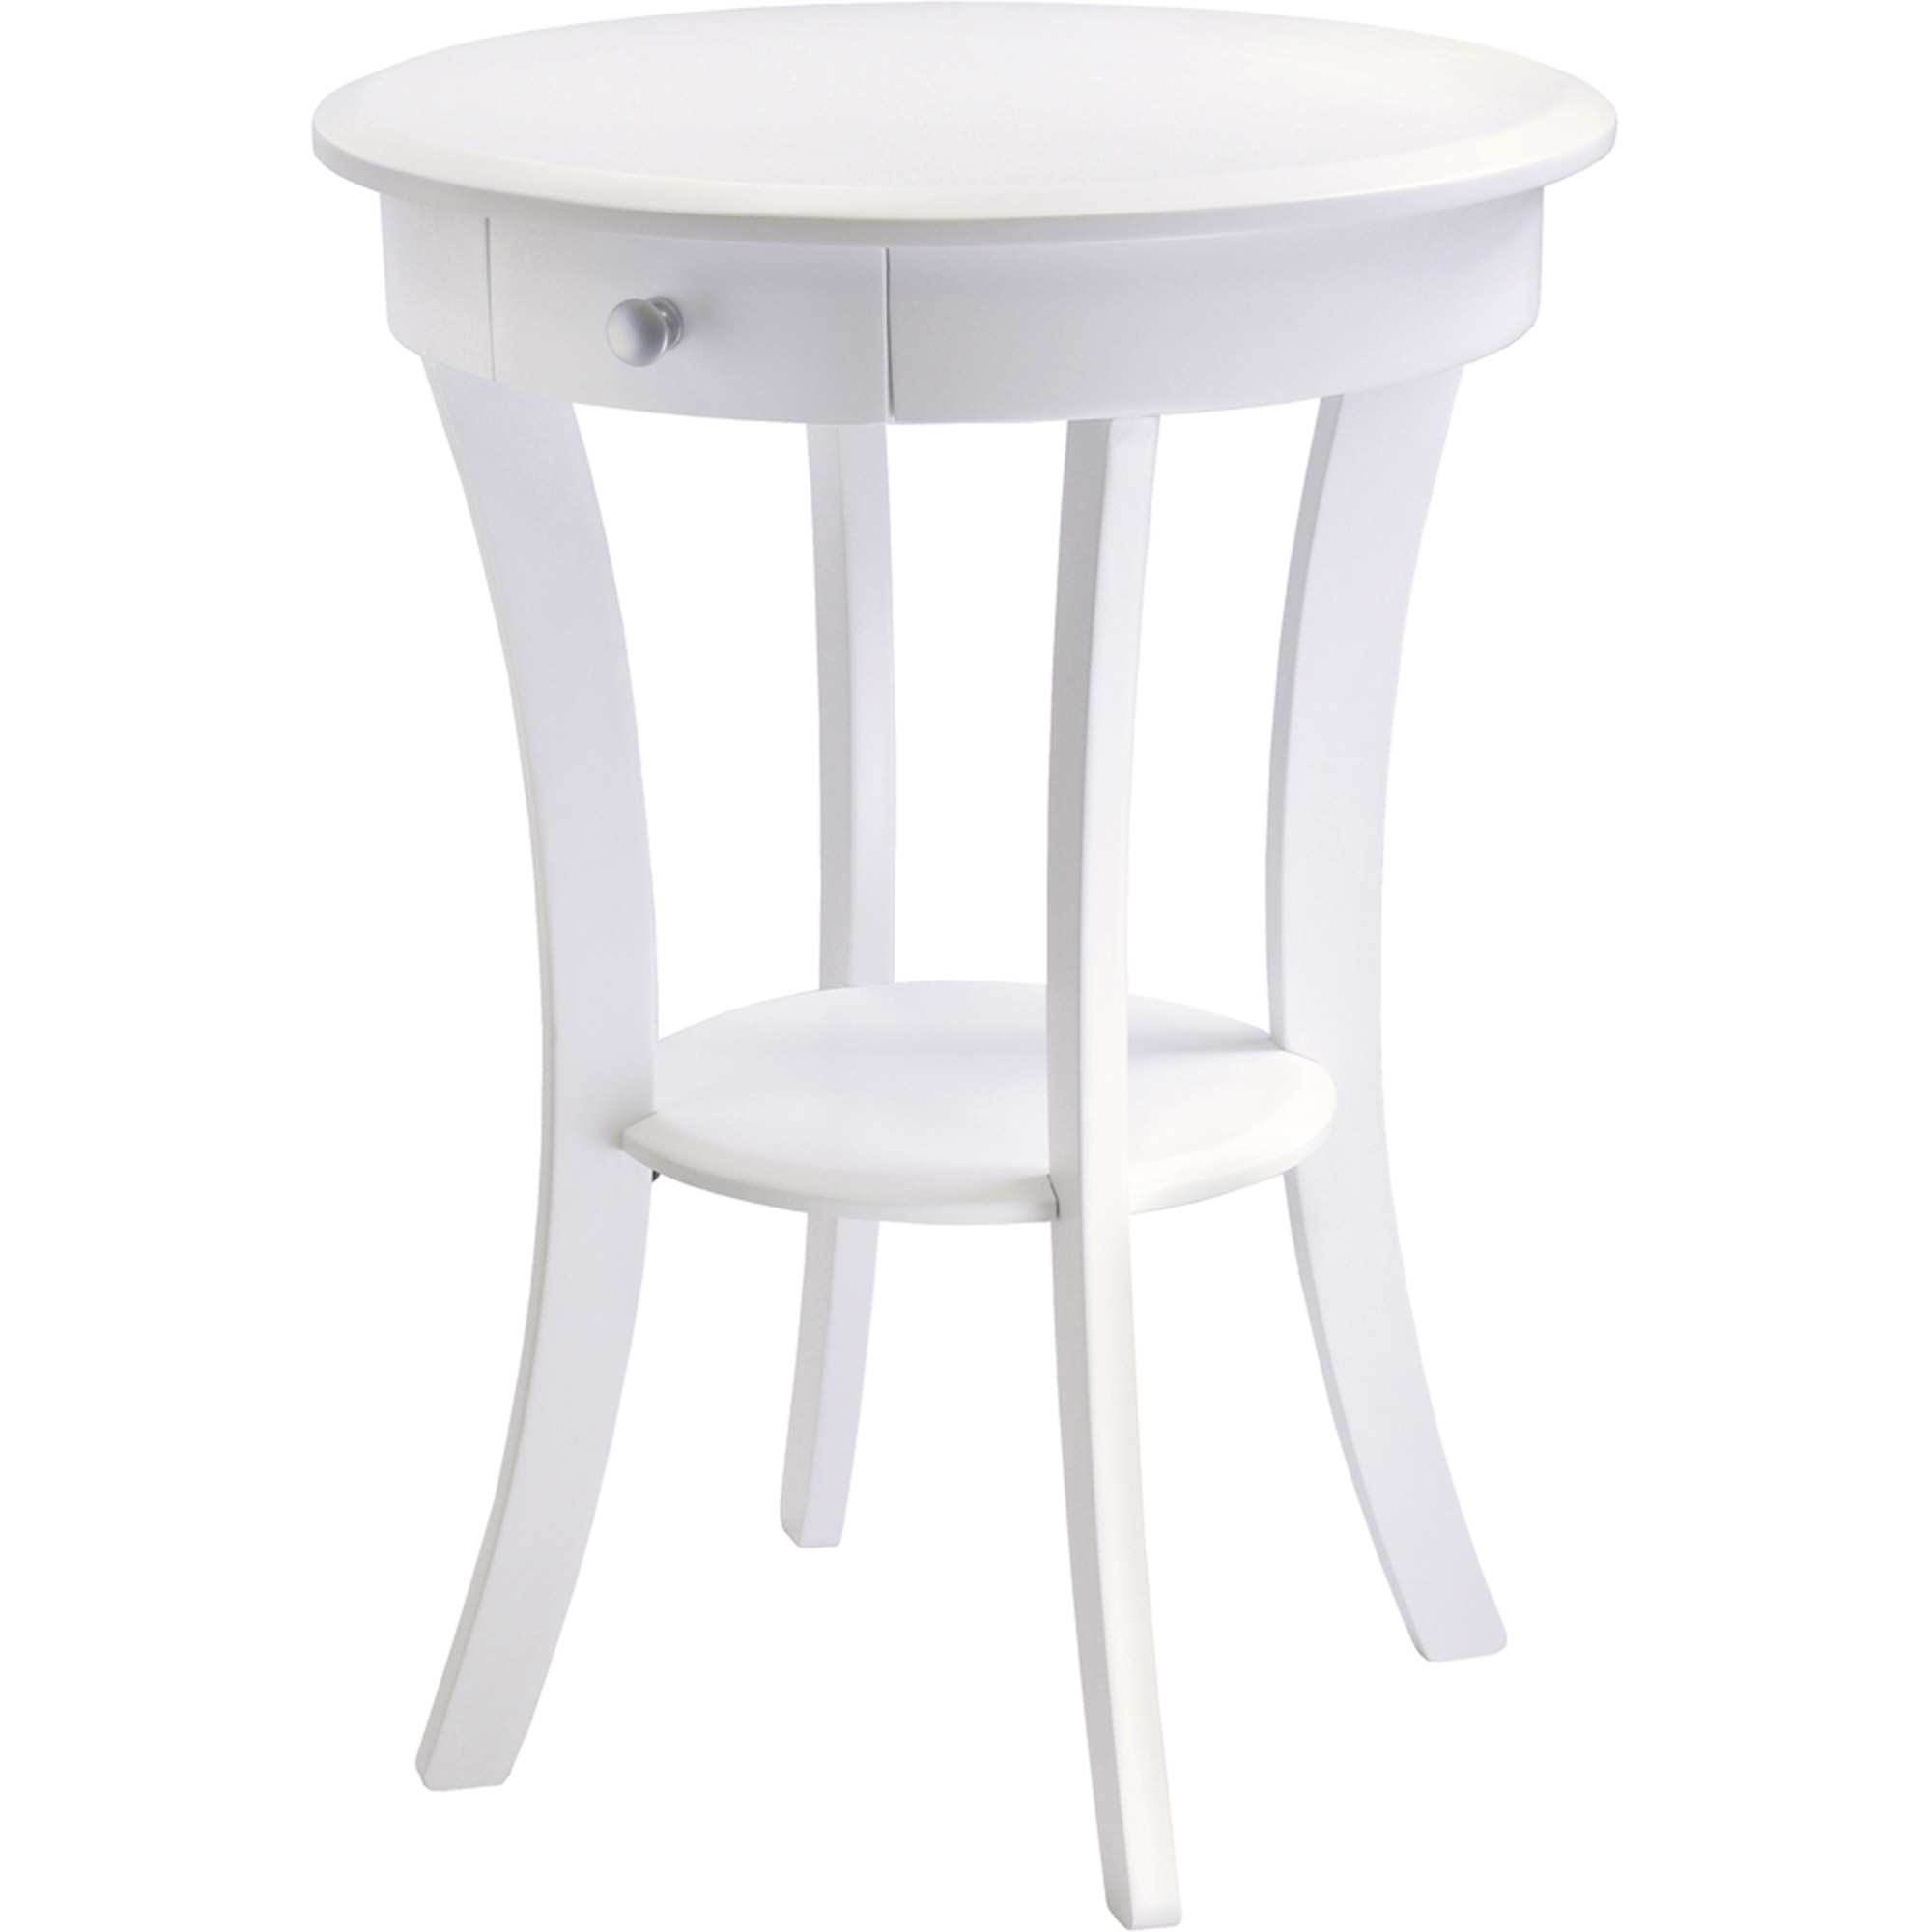 cool home round accent table small ideas wood covers side faux unfinished wooden white pedestal tablecloth cover decorating threshold for full size and metal end marble top target